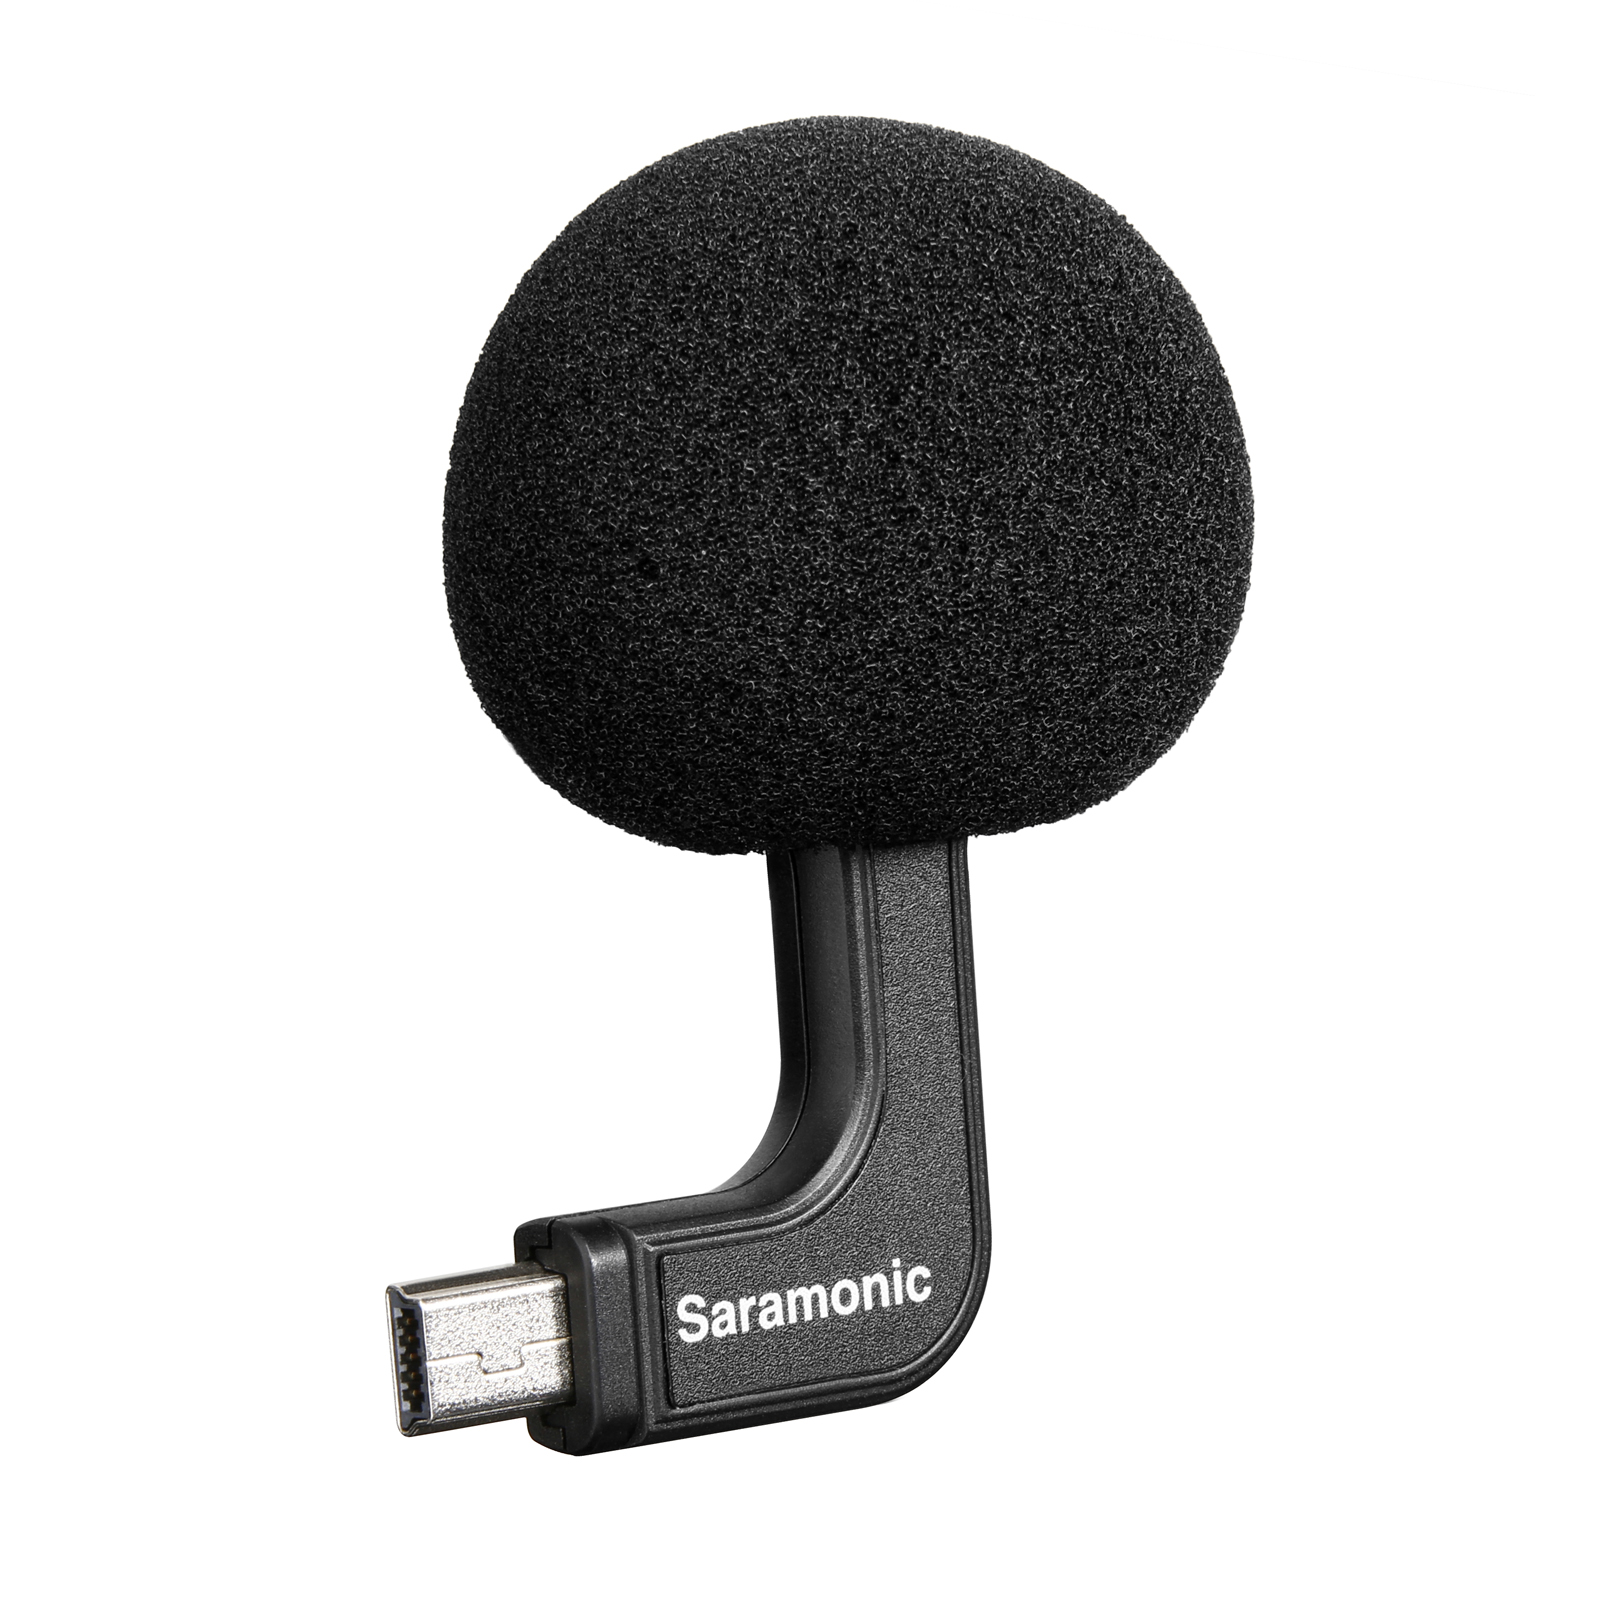 Saramonic G-Mic Microphones for iOS & Android Devices audio